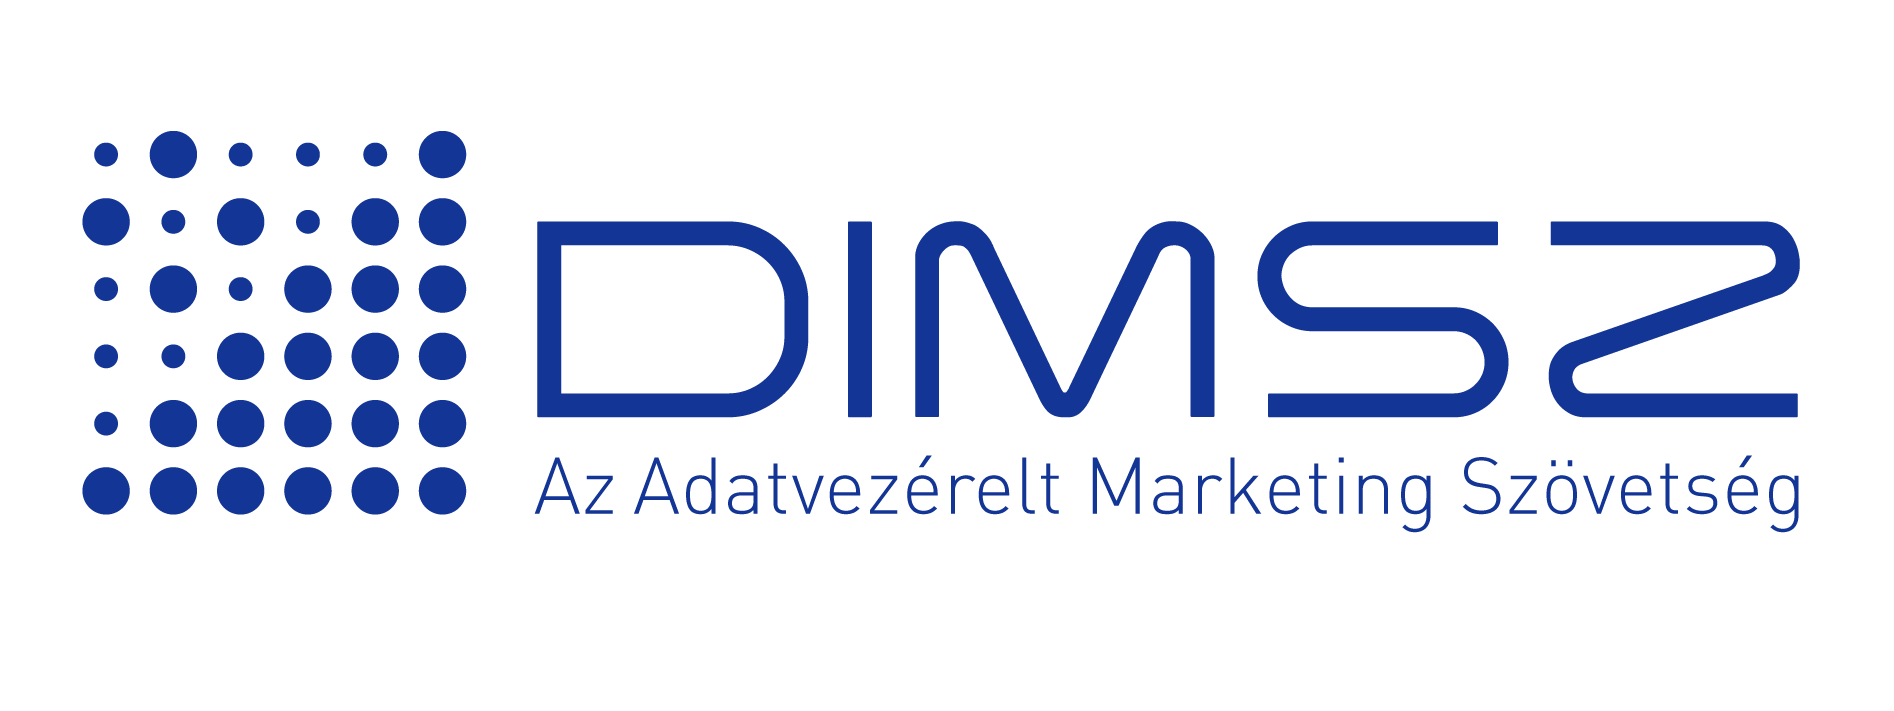 DIMSZ – Az Adatvezérelt Marketing Szövetség – Data & Marketing Association